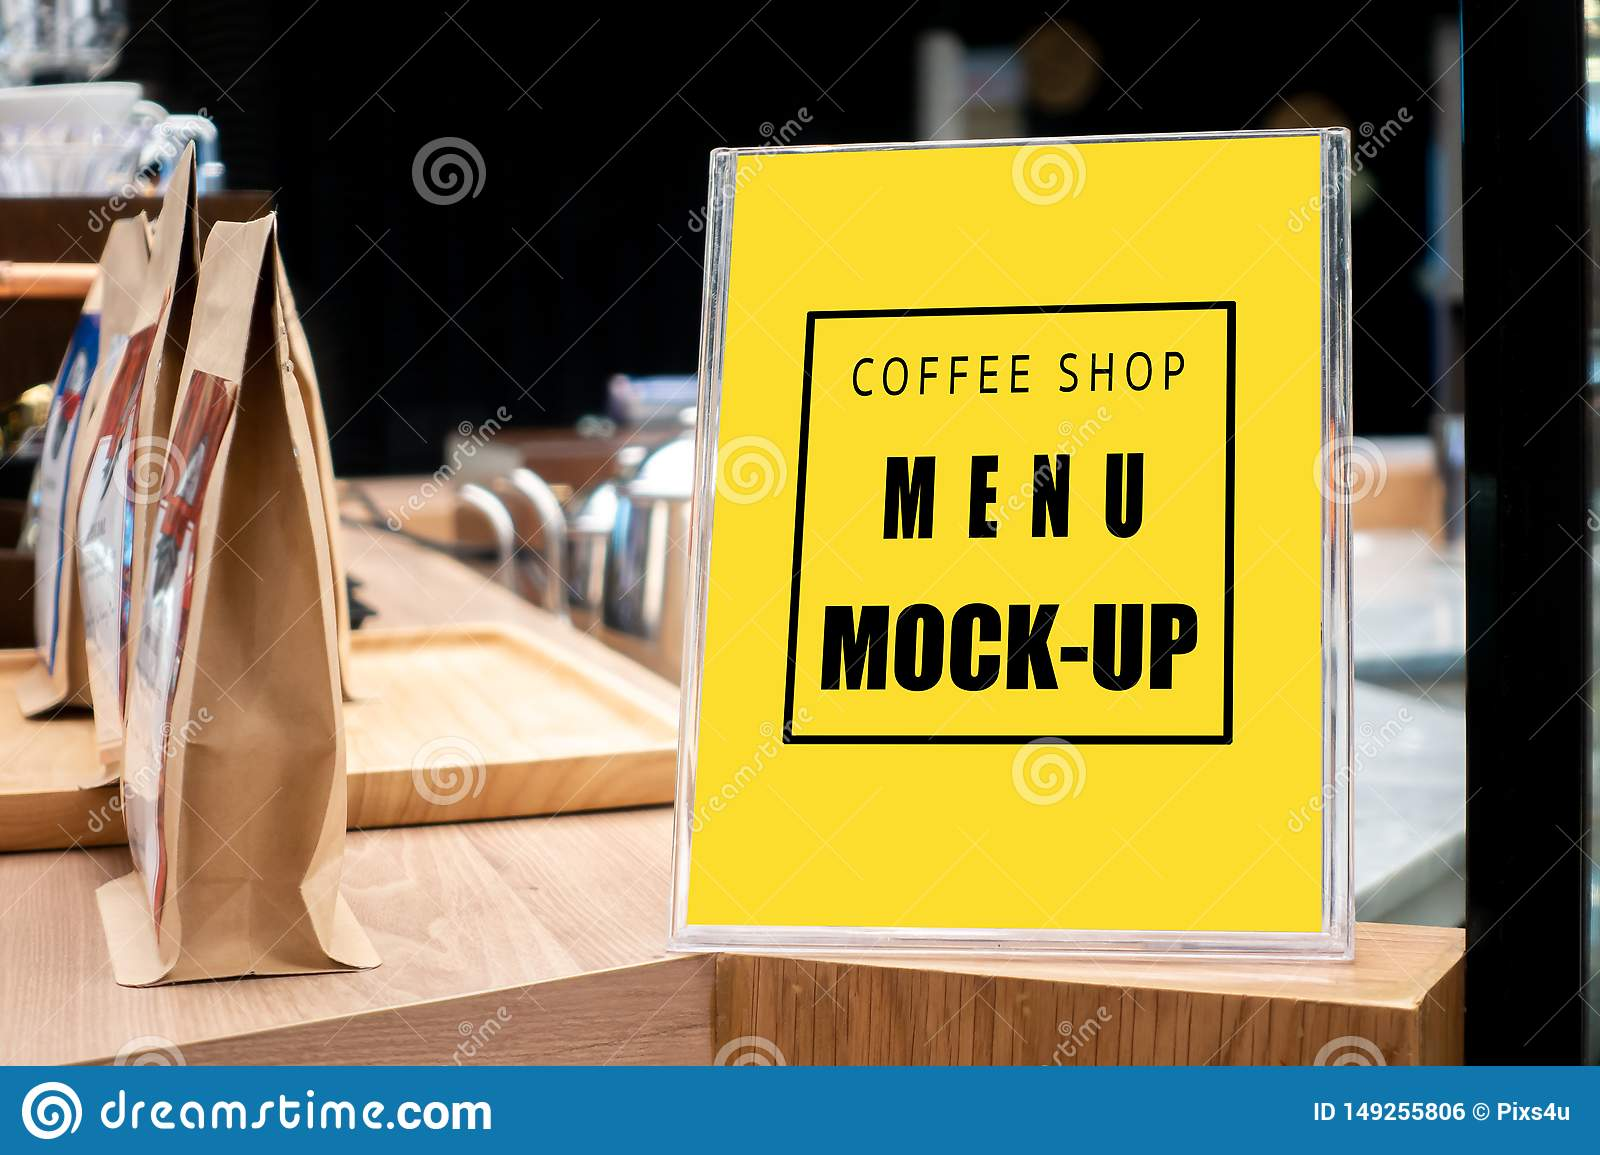 Mock Up Vertical Signboard With Acrylic Frame In Coffee Shop Stock